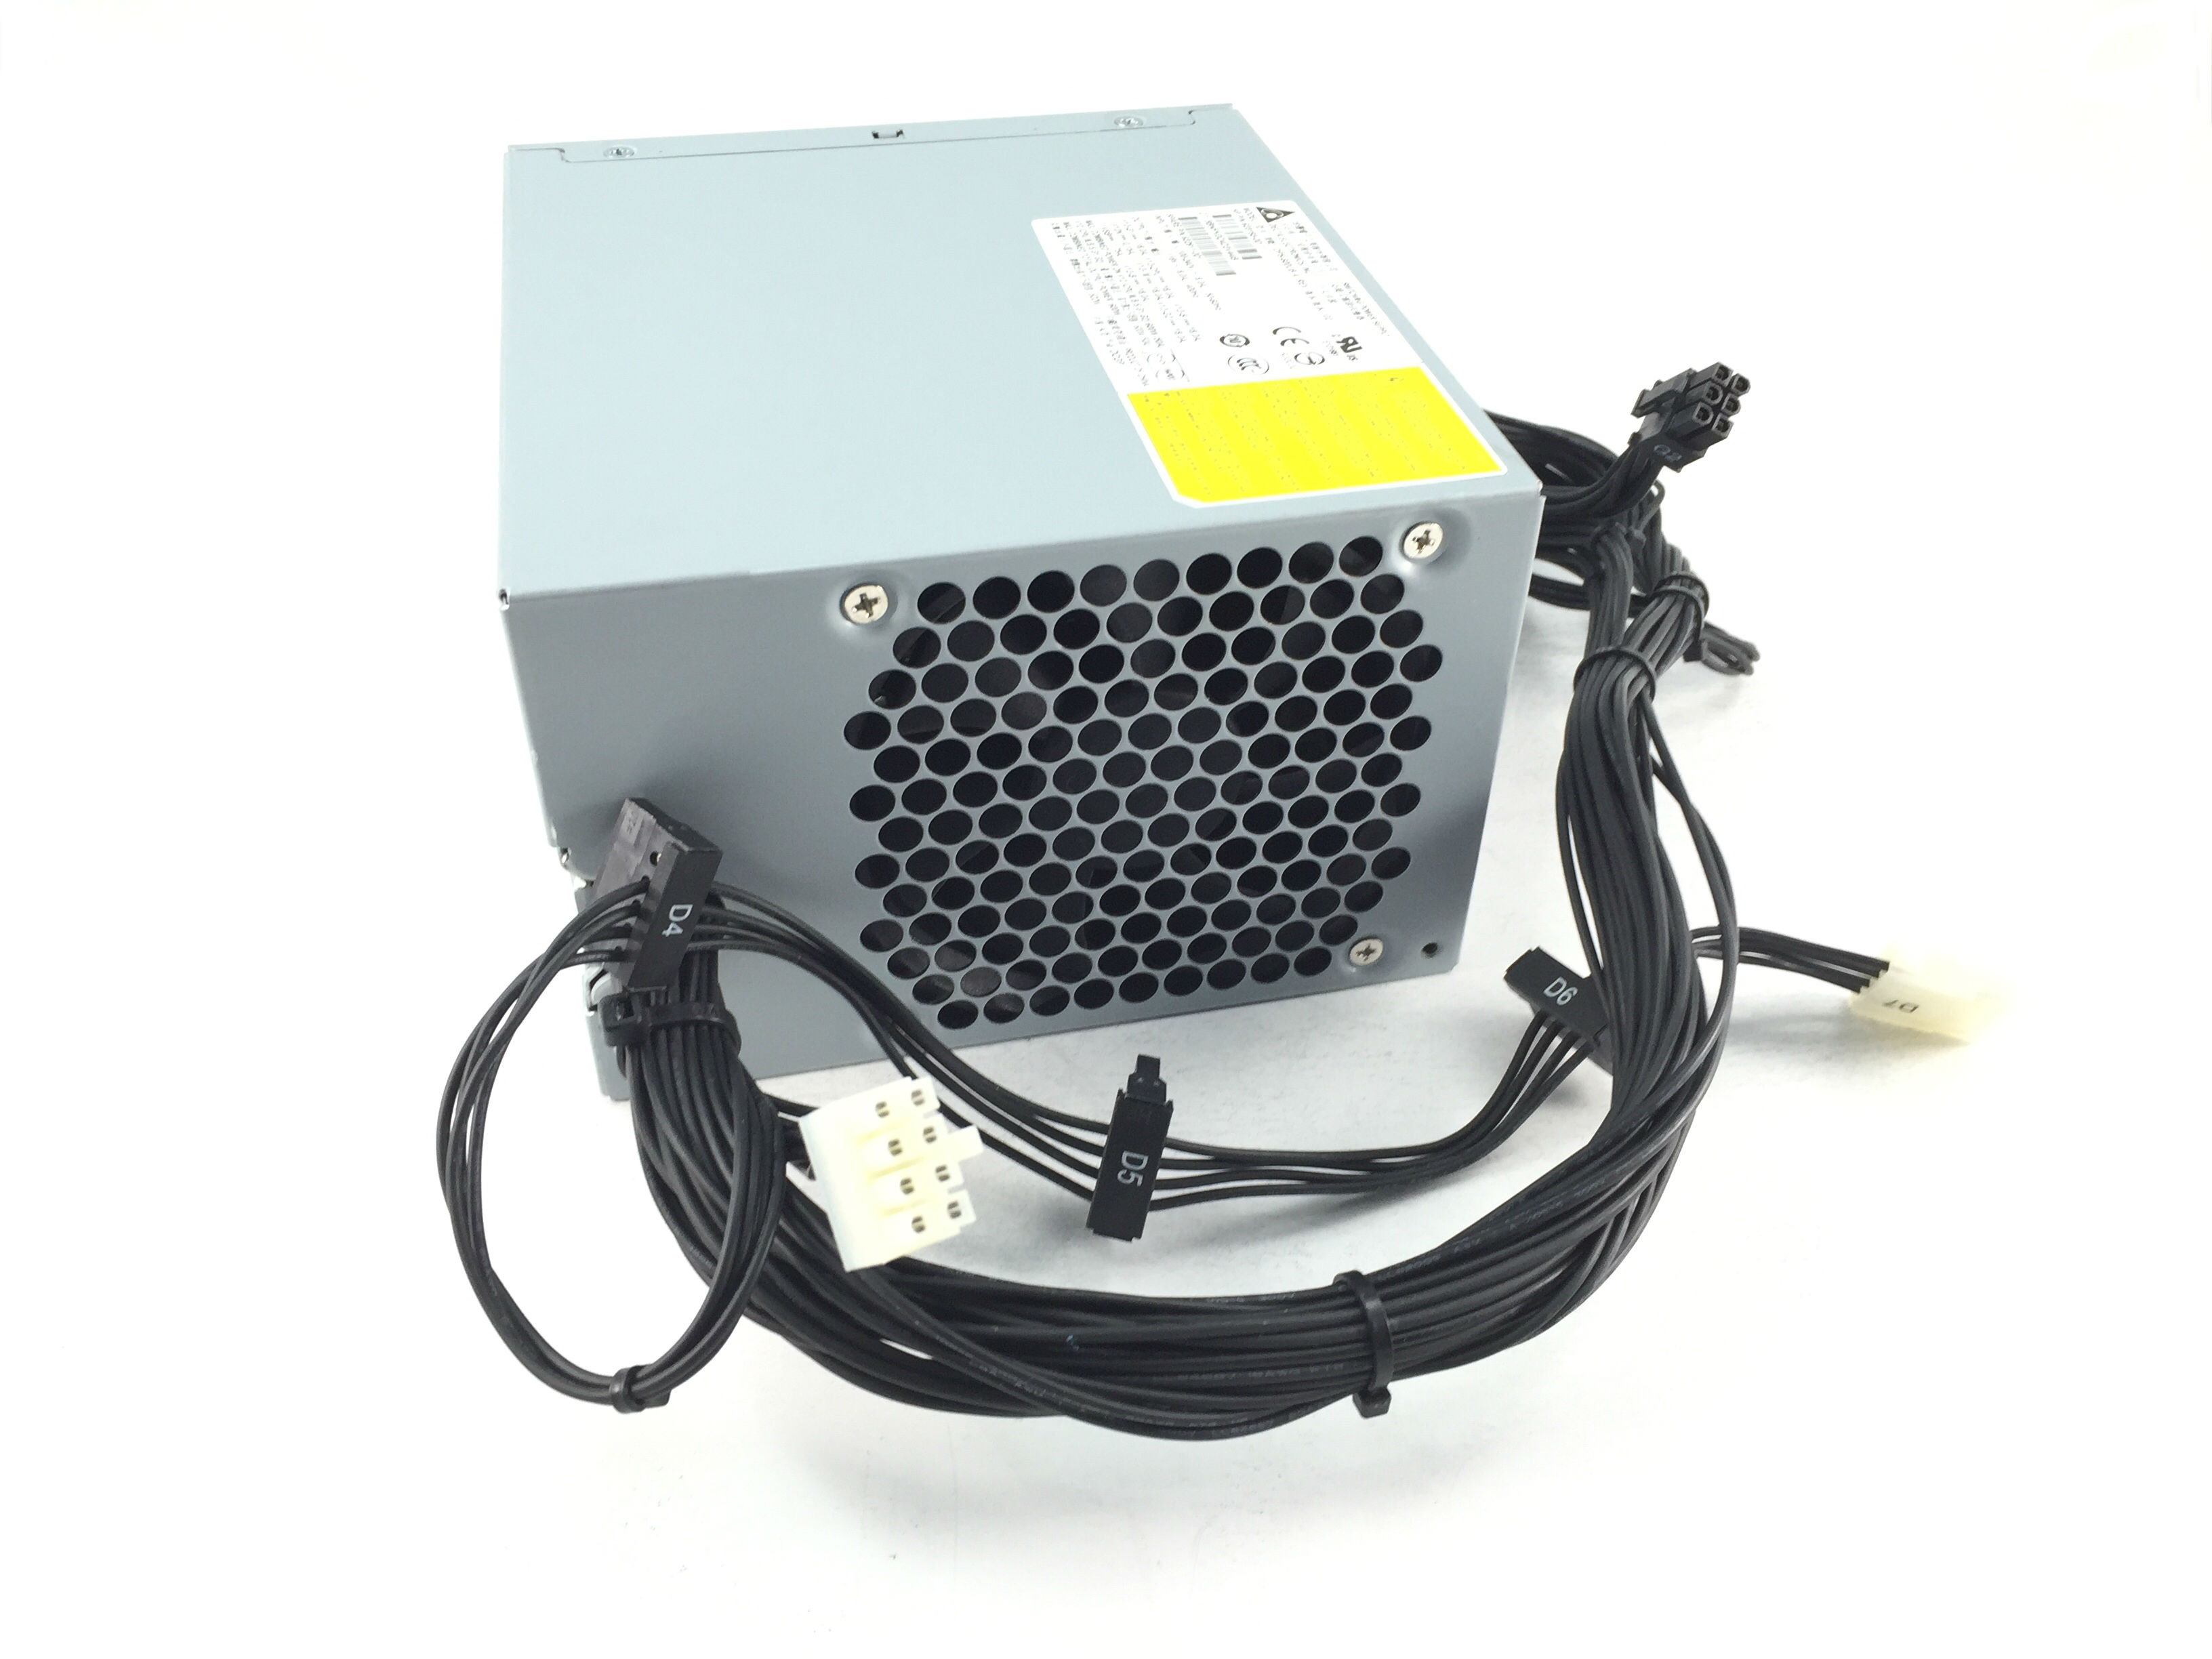 HP Z420 WorkStation 600W Power Supply (DPS-600UB)